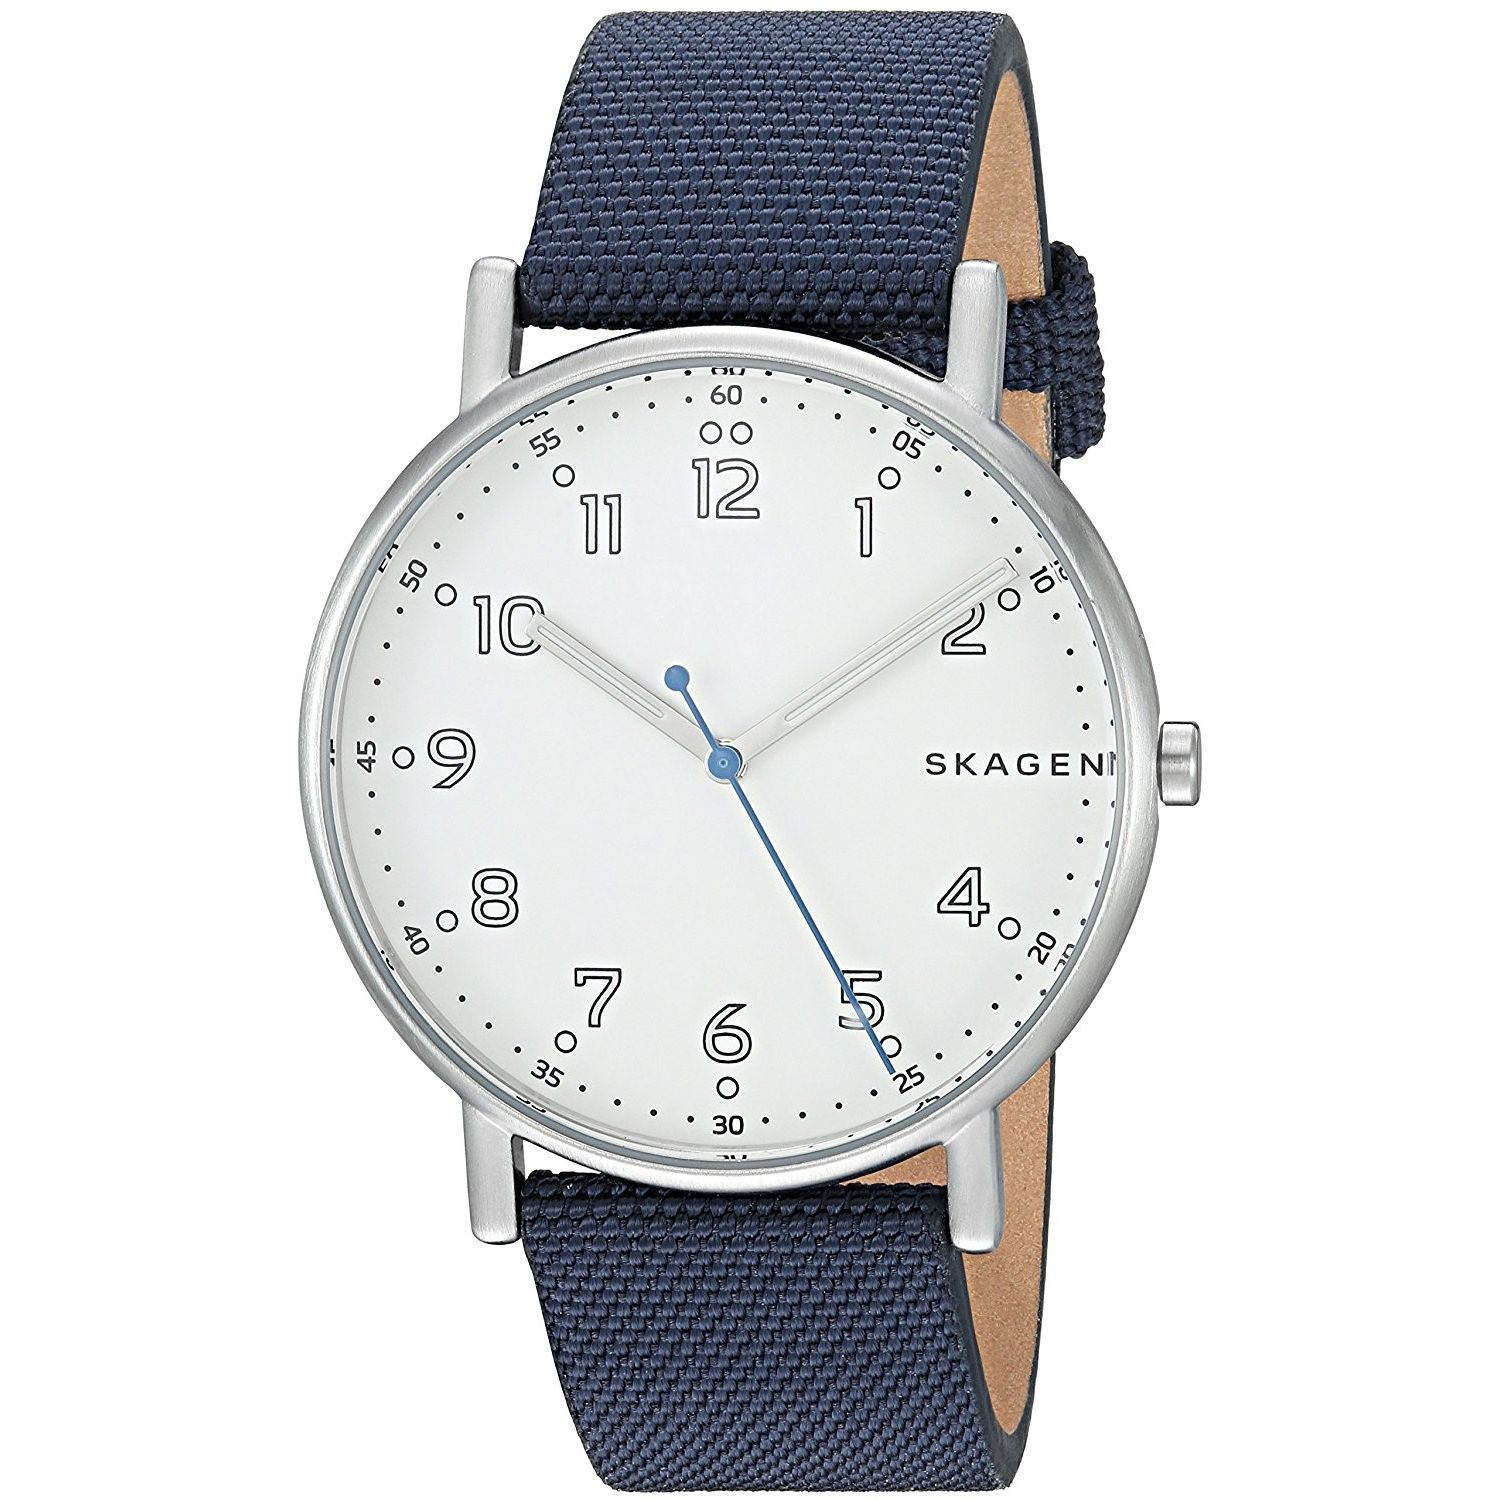 4f50e61aa5466 Skagen Men s SKW6356  Signatur  Blue Nylon and Leather Watch ...